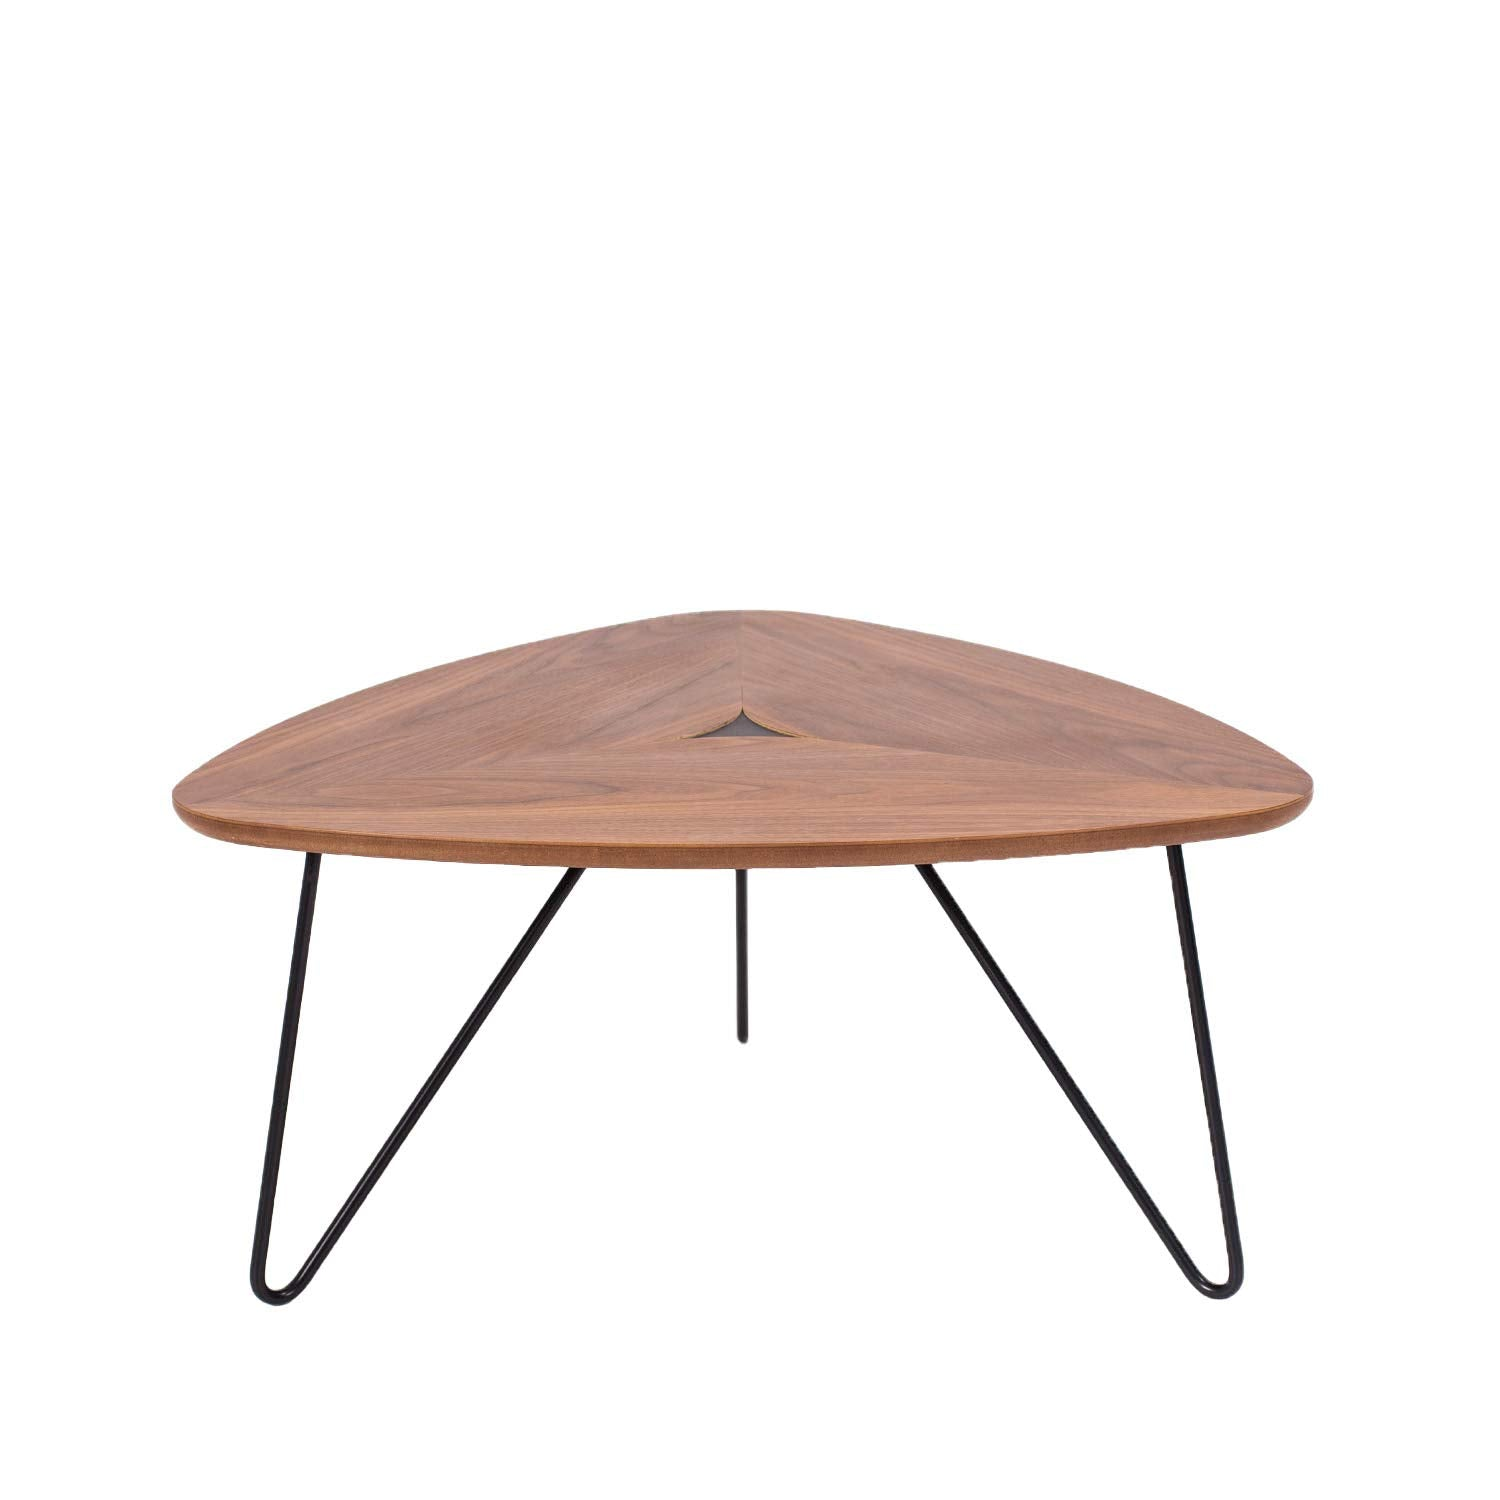 Marque Amazon - Rivet - Table basse triangulaire, en noyer et à